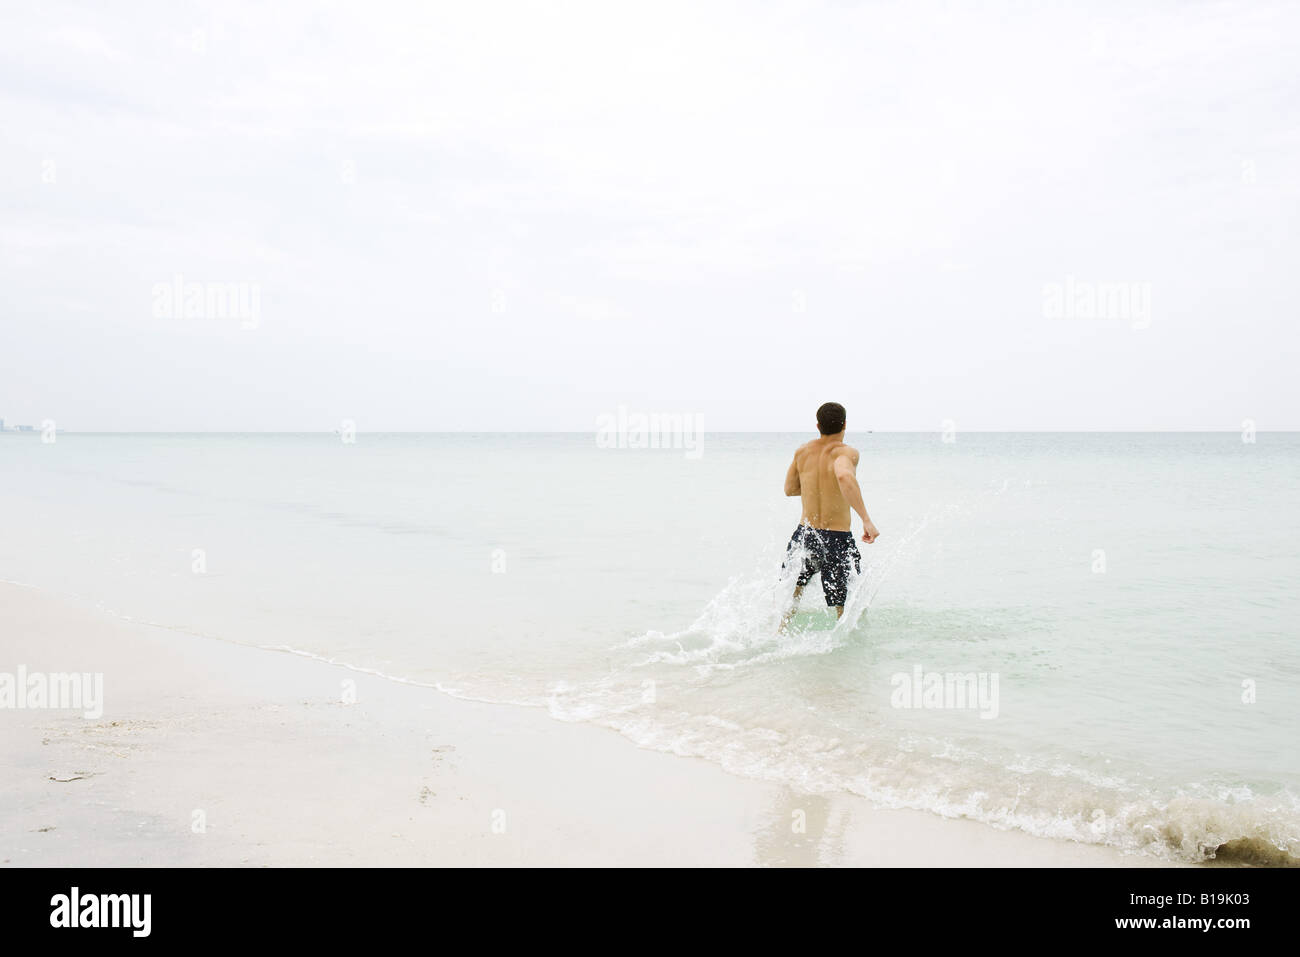 Man running in shallow water at the beach, rear view - Stock Image